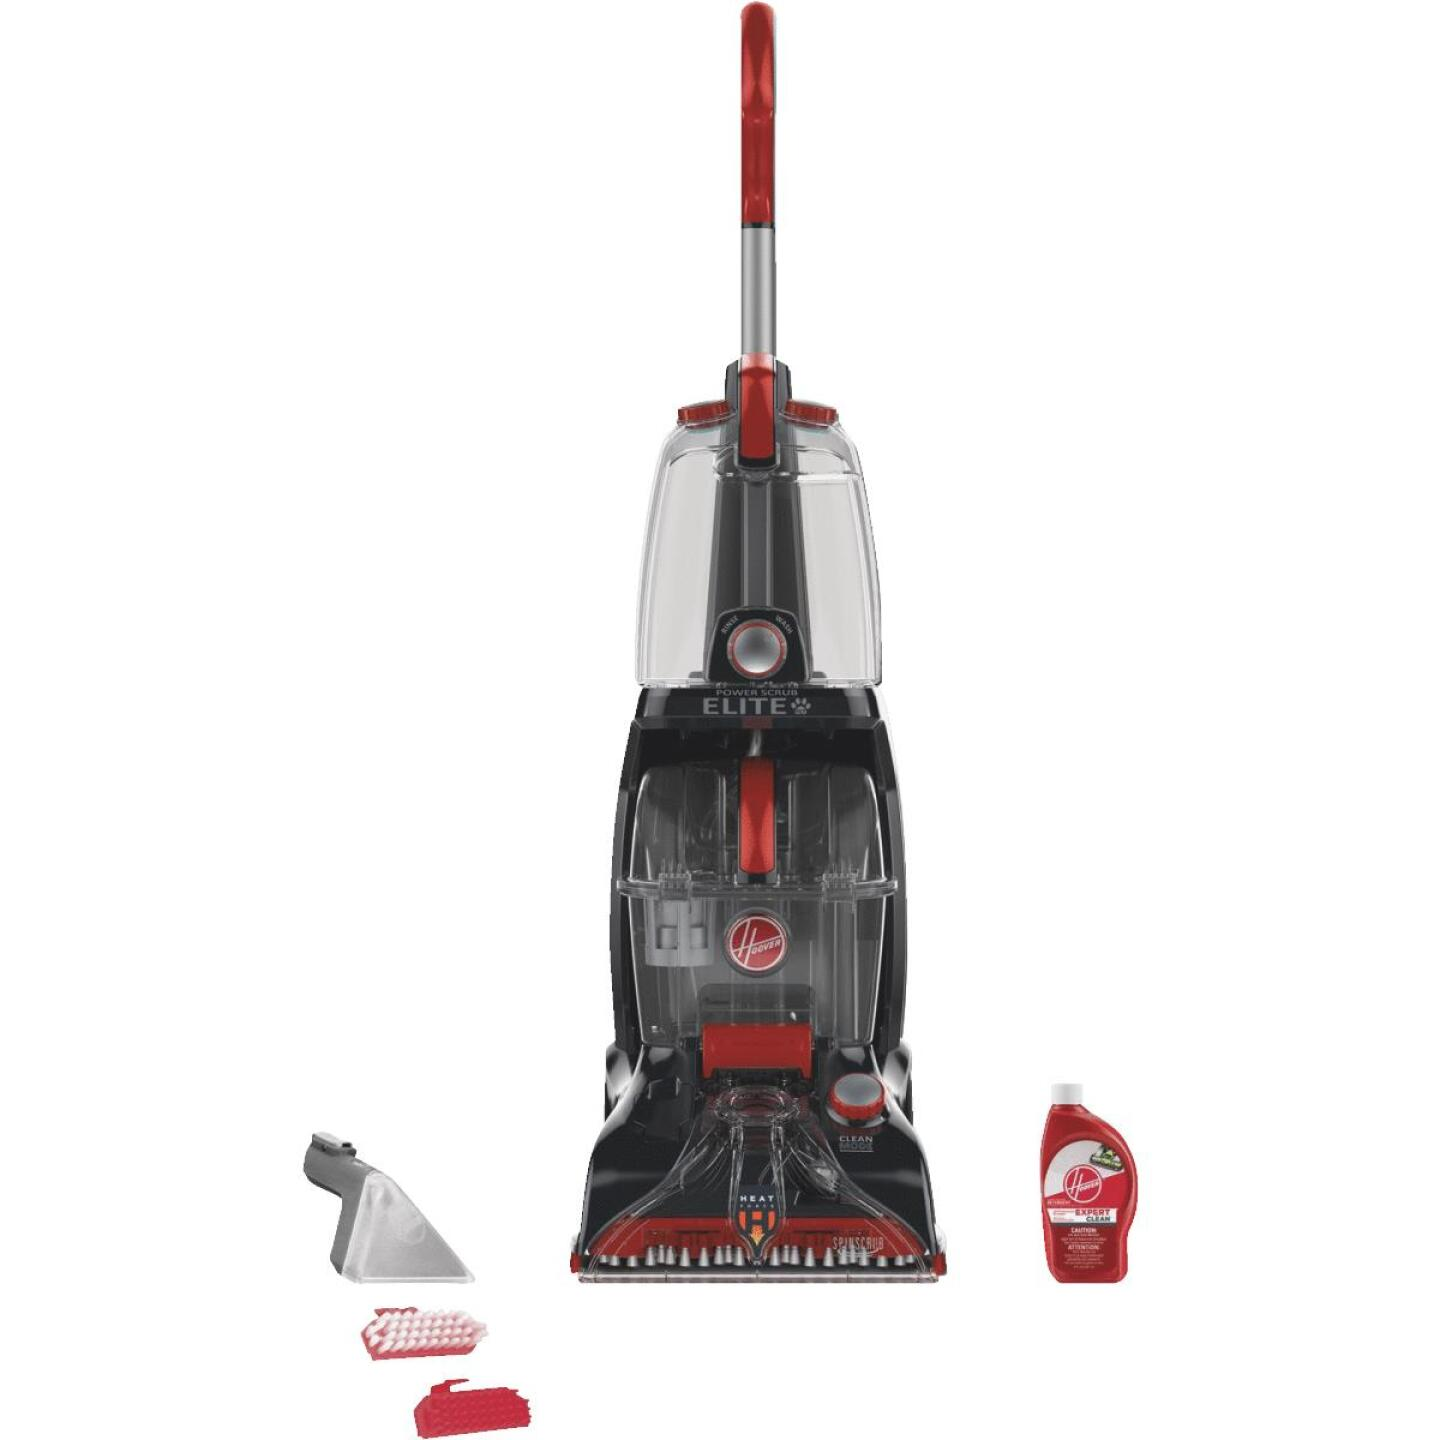 Hoover Power Scrub Elite 1.25 Gal. Pet Upright Carpet Cleaner Machine Image 1